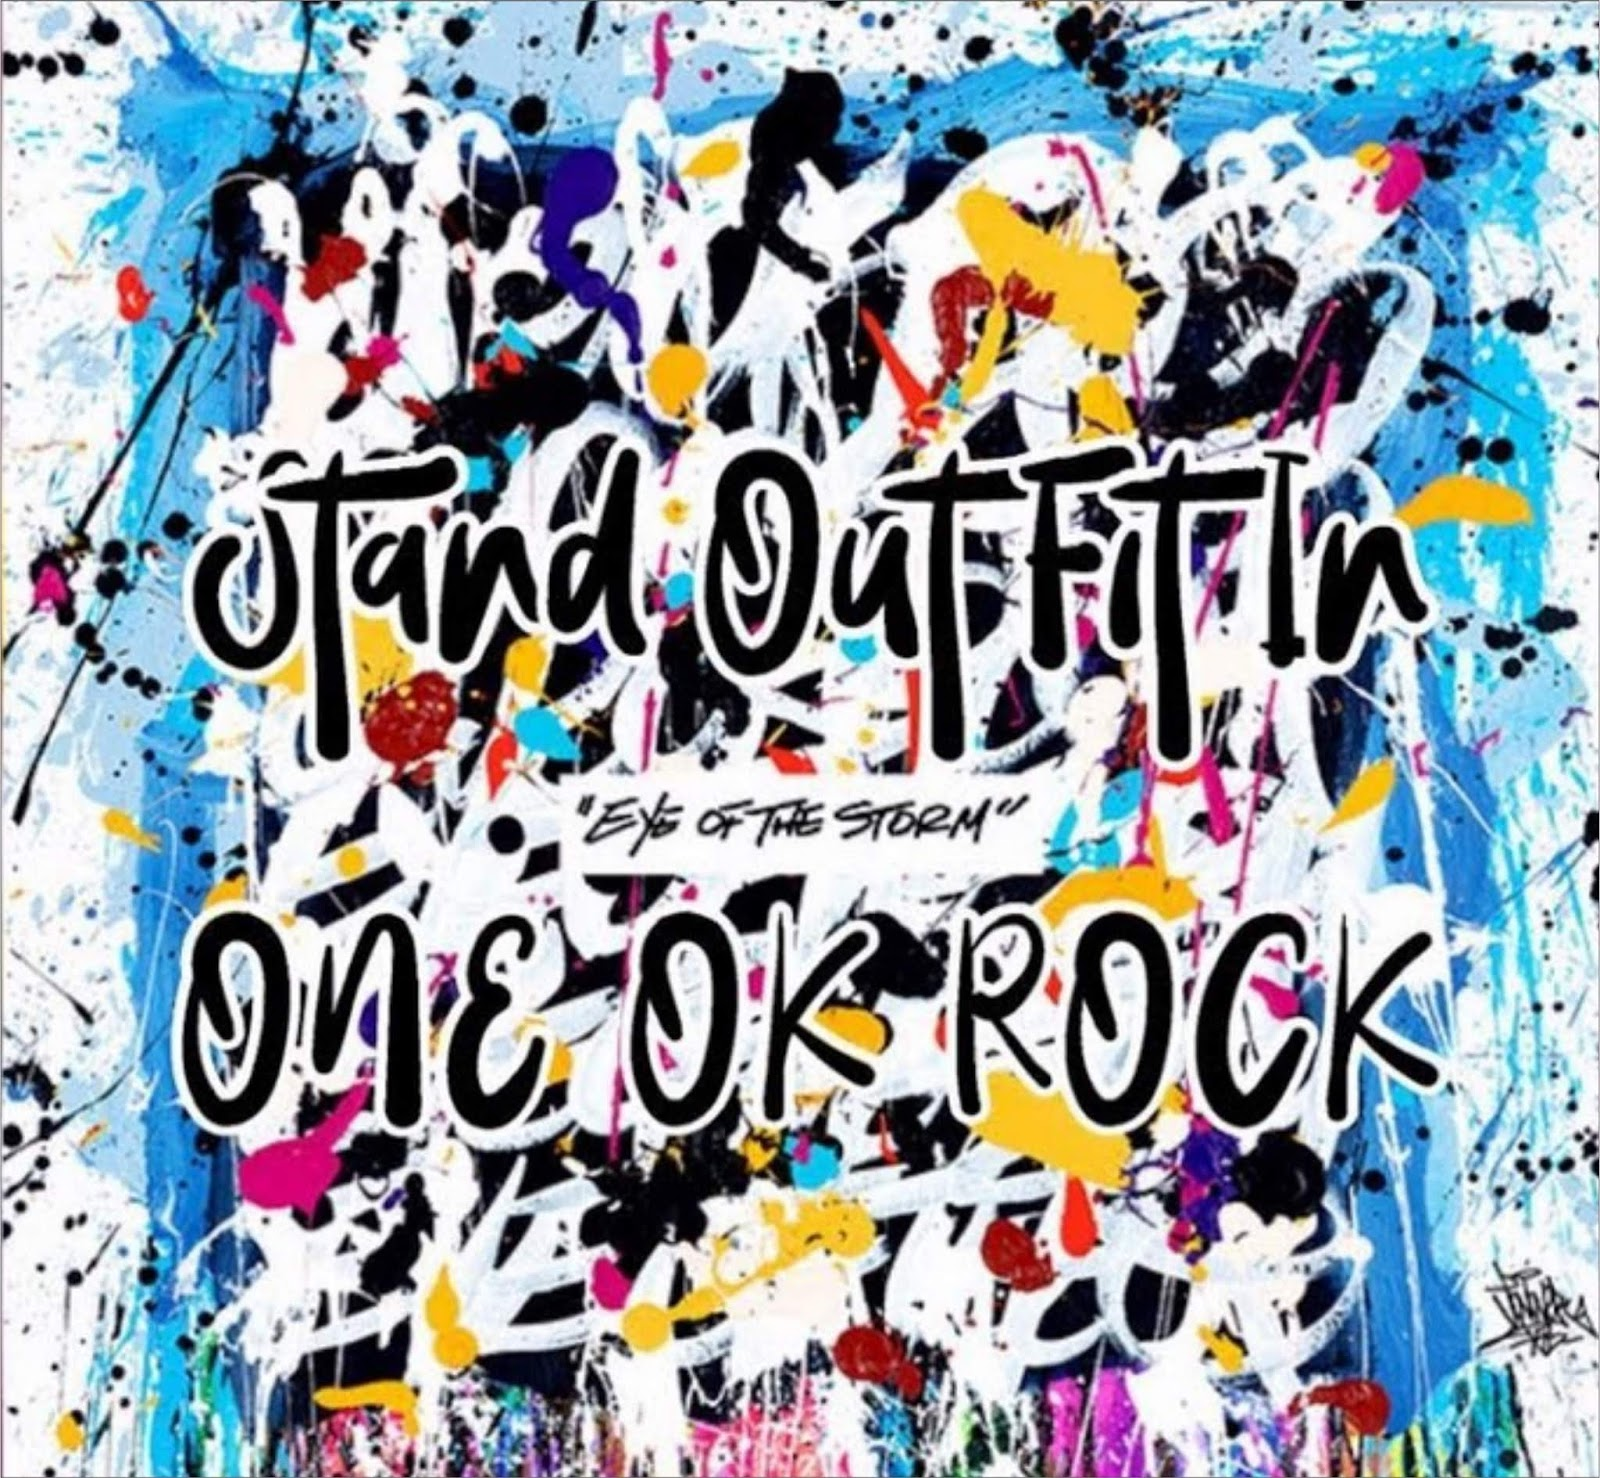 one ok rock stand out fit in lyrics chord myfourten 4g hobbies